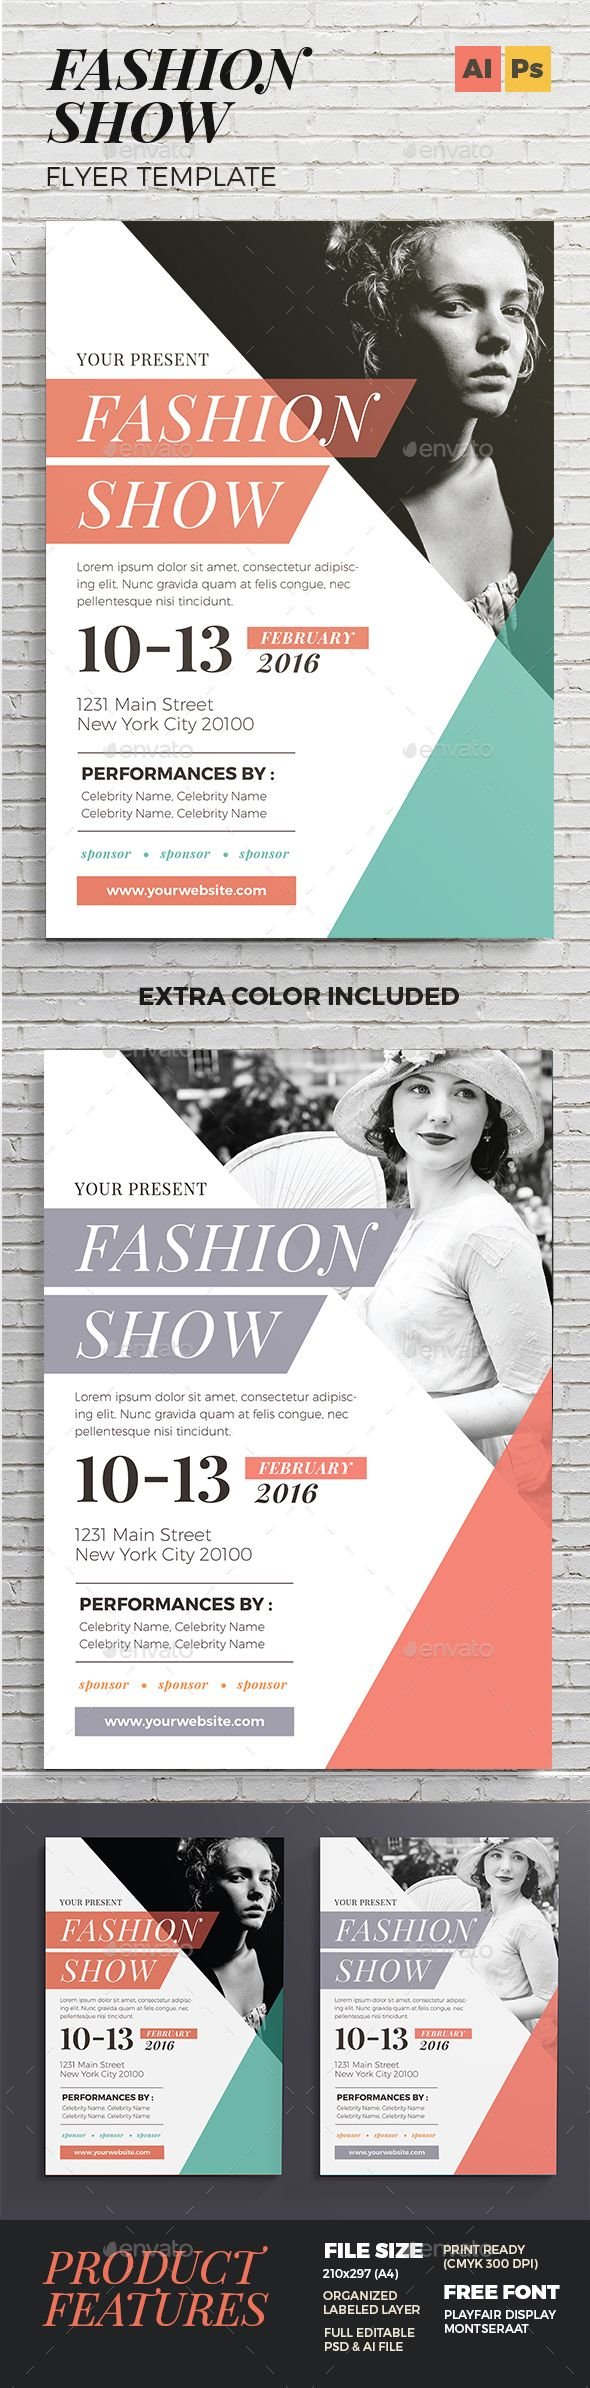 Mysterious poster design with 3d text - Fashion Show Flyer